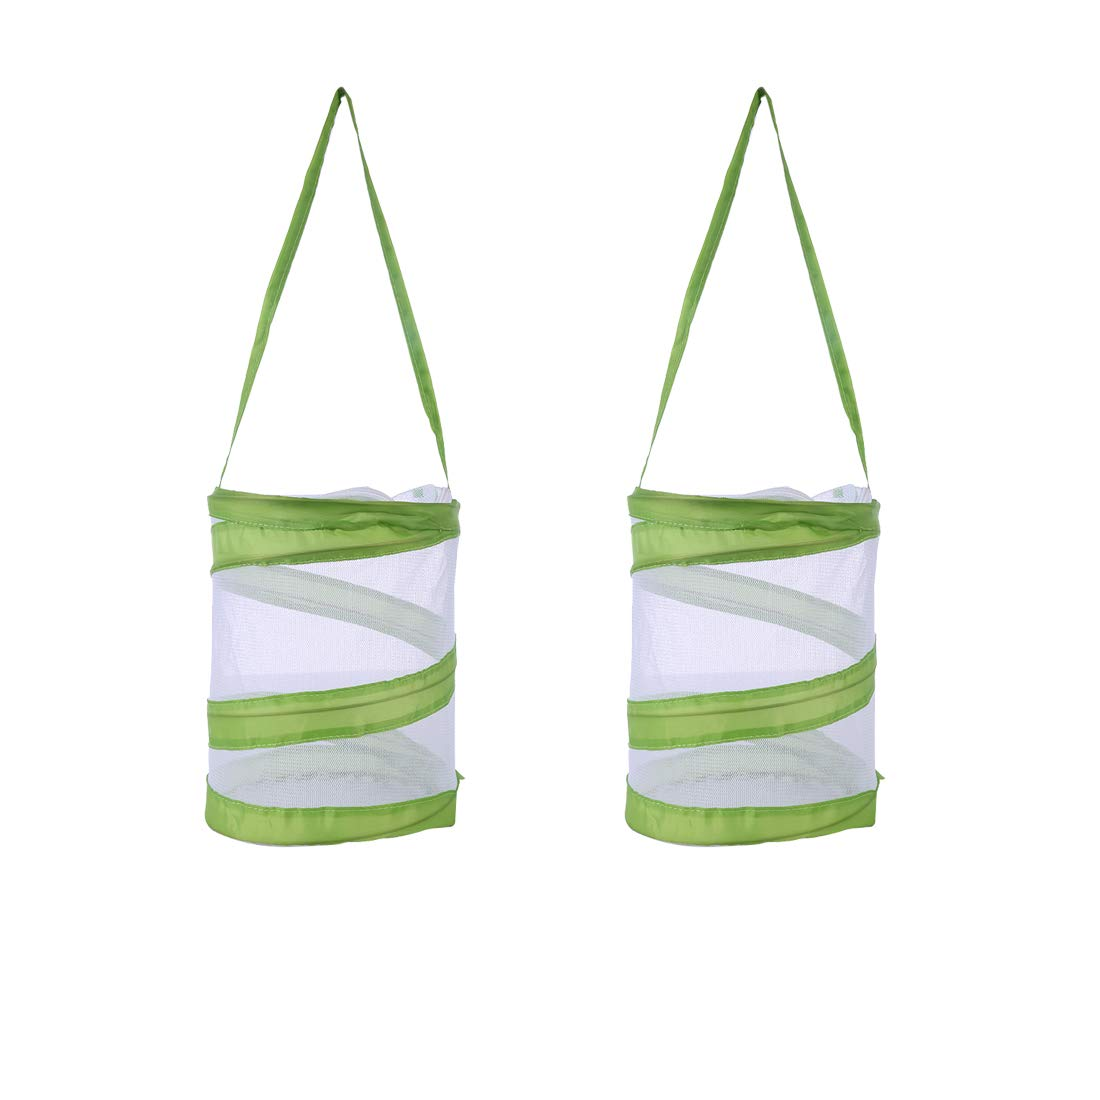 RuiyiF 2 PACK Insect and Butterfly Habitat Terrarium Pop-up Monarch Butterfly Cage Insect Growing Kits for Kids